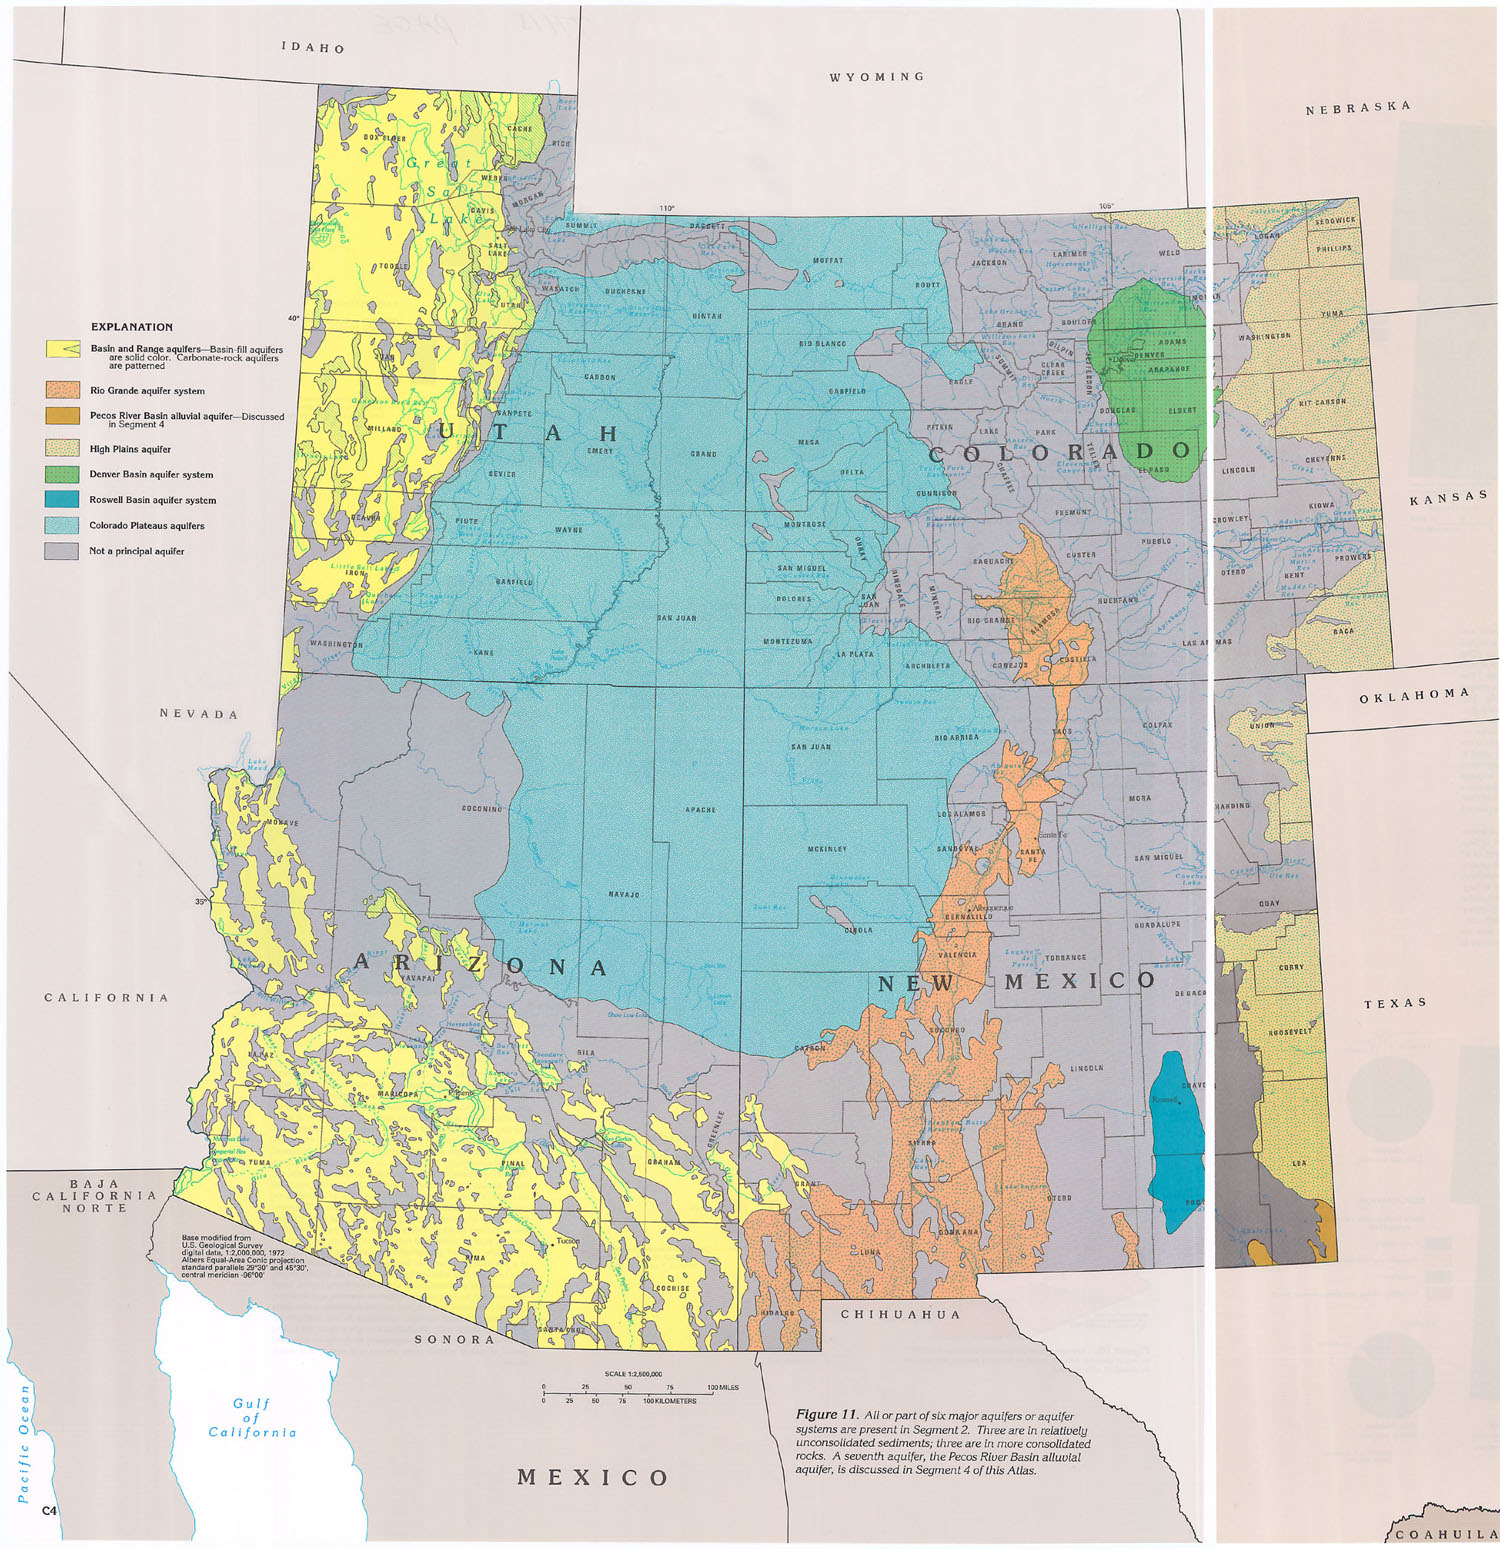 Arizona Aquifer Map Another Canyon in Arizona – National Geographic Education Blog Arizona Aquifer Map